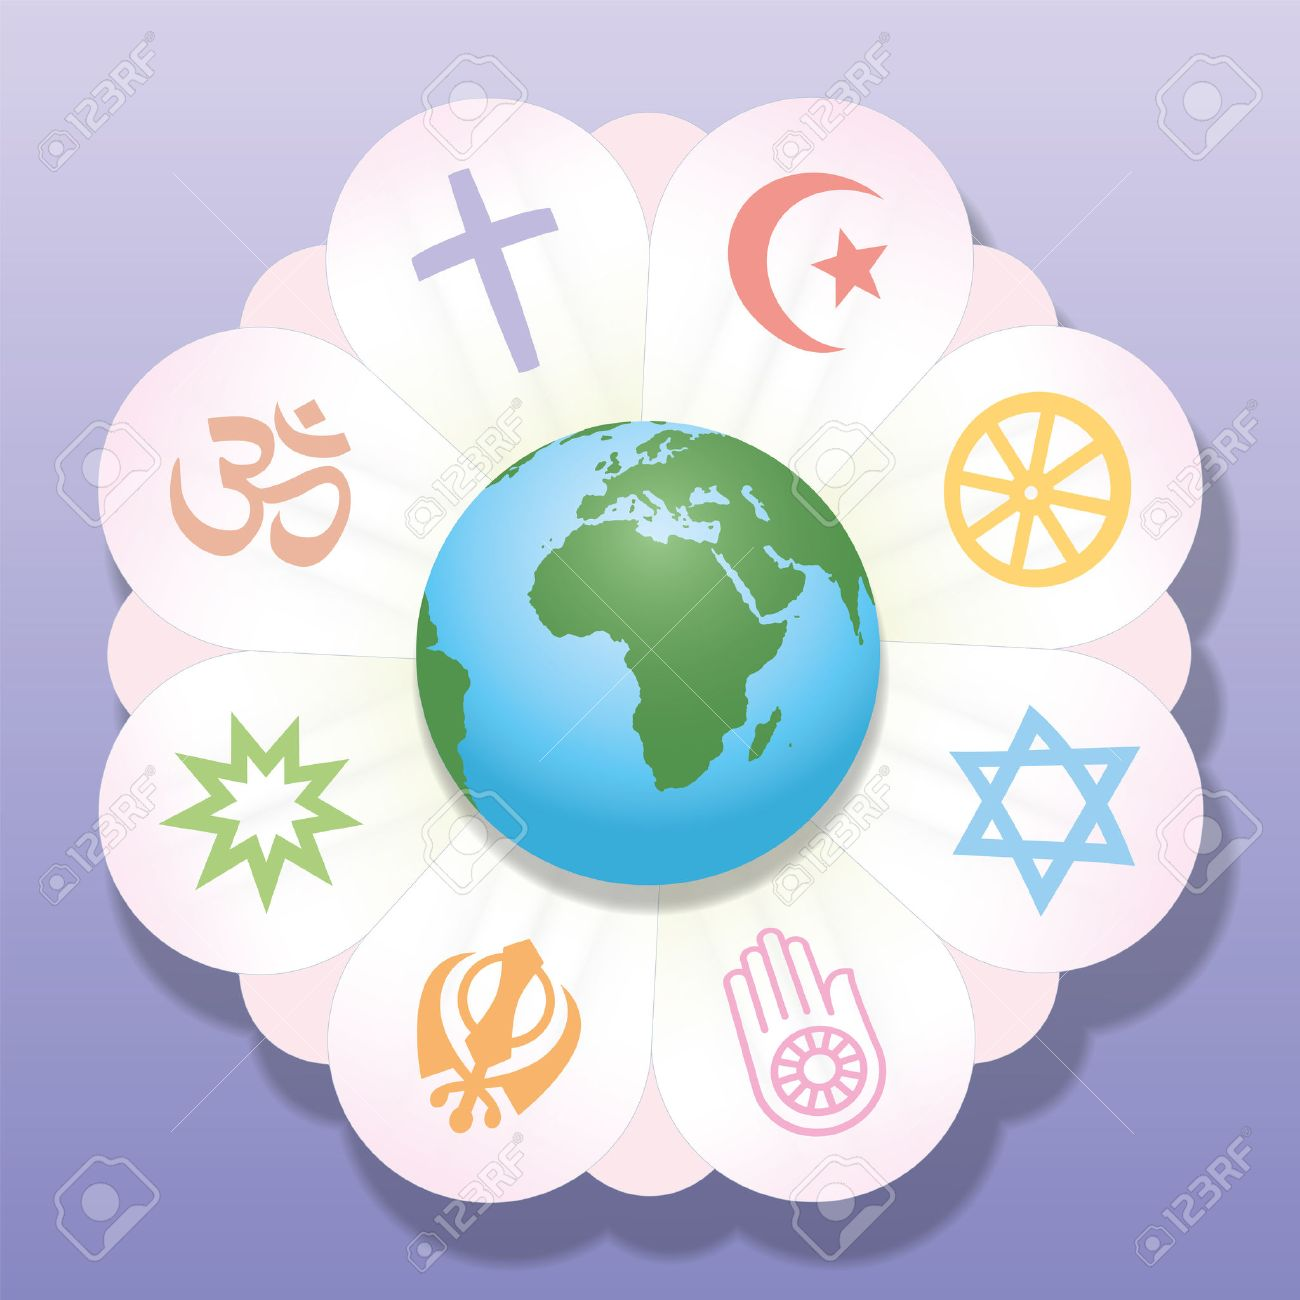 Religious symbols images stock pictures royalty free religious religious symbols world religions united as petals of a flower a symbol for religious dhlflorist Choice Image